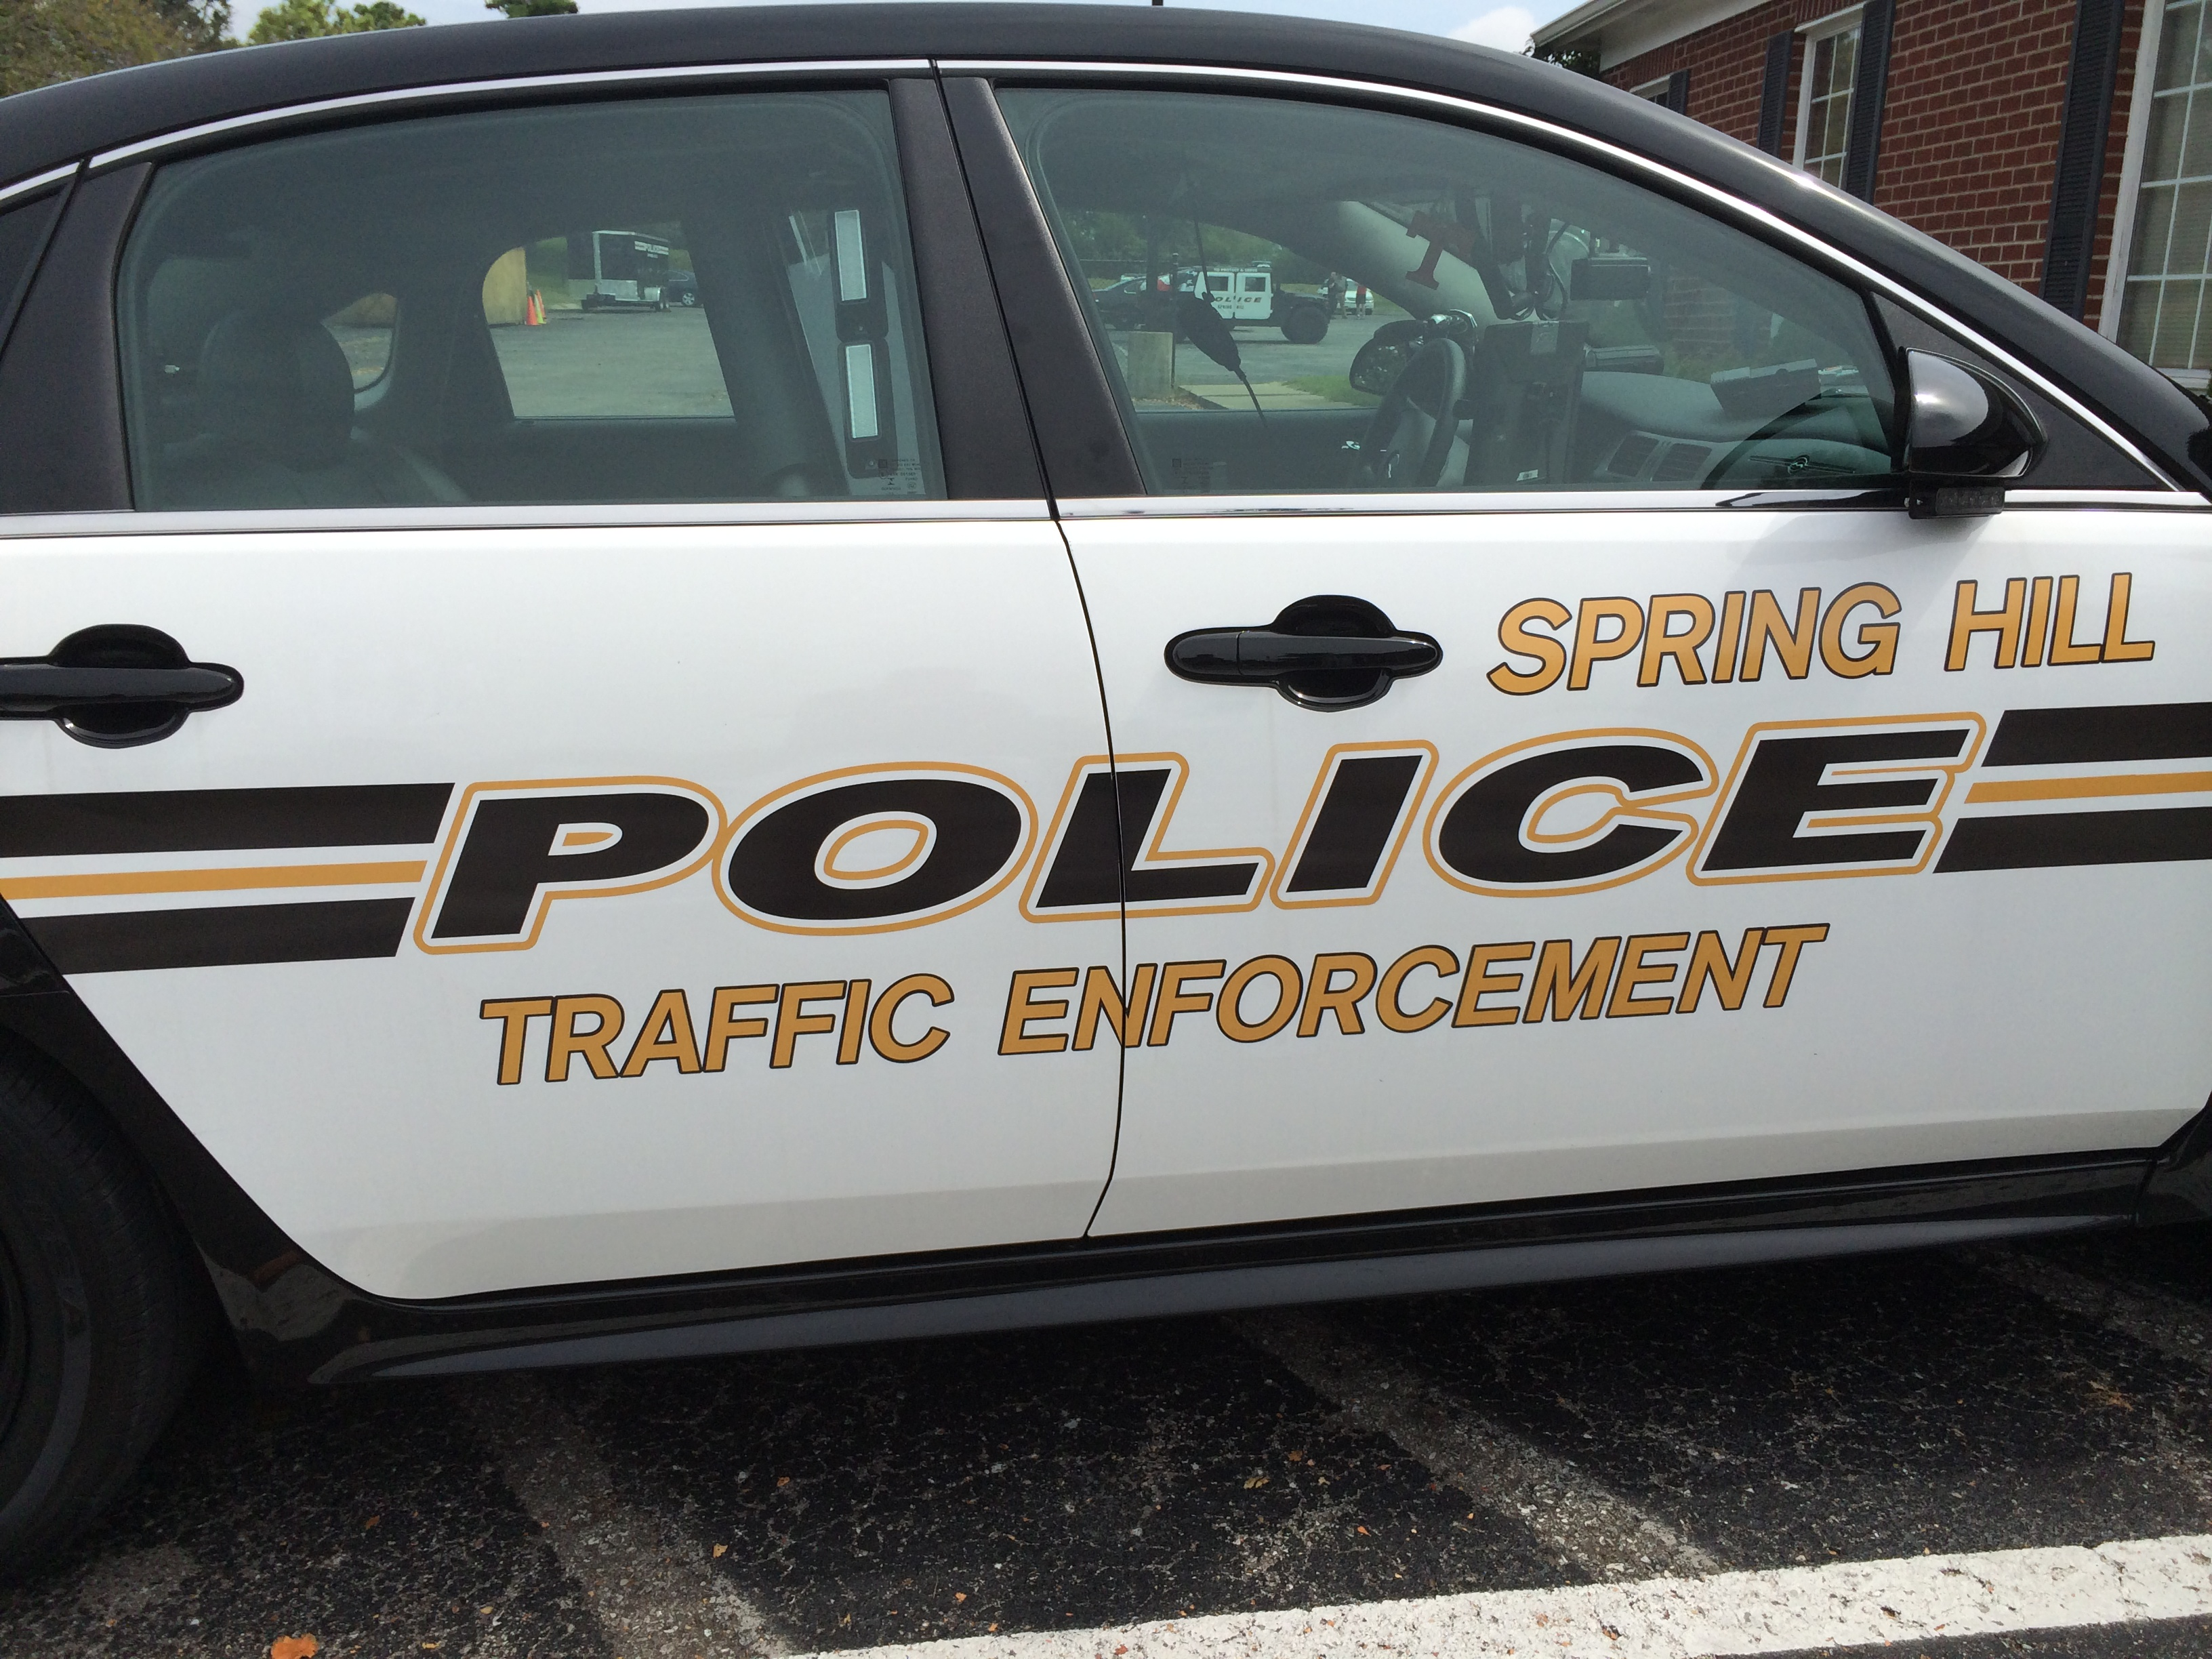 SHPD Traffic Enforcement